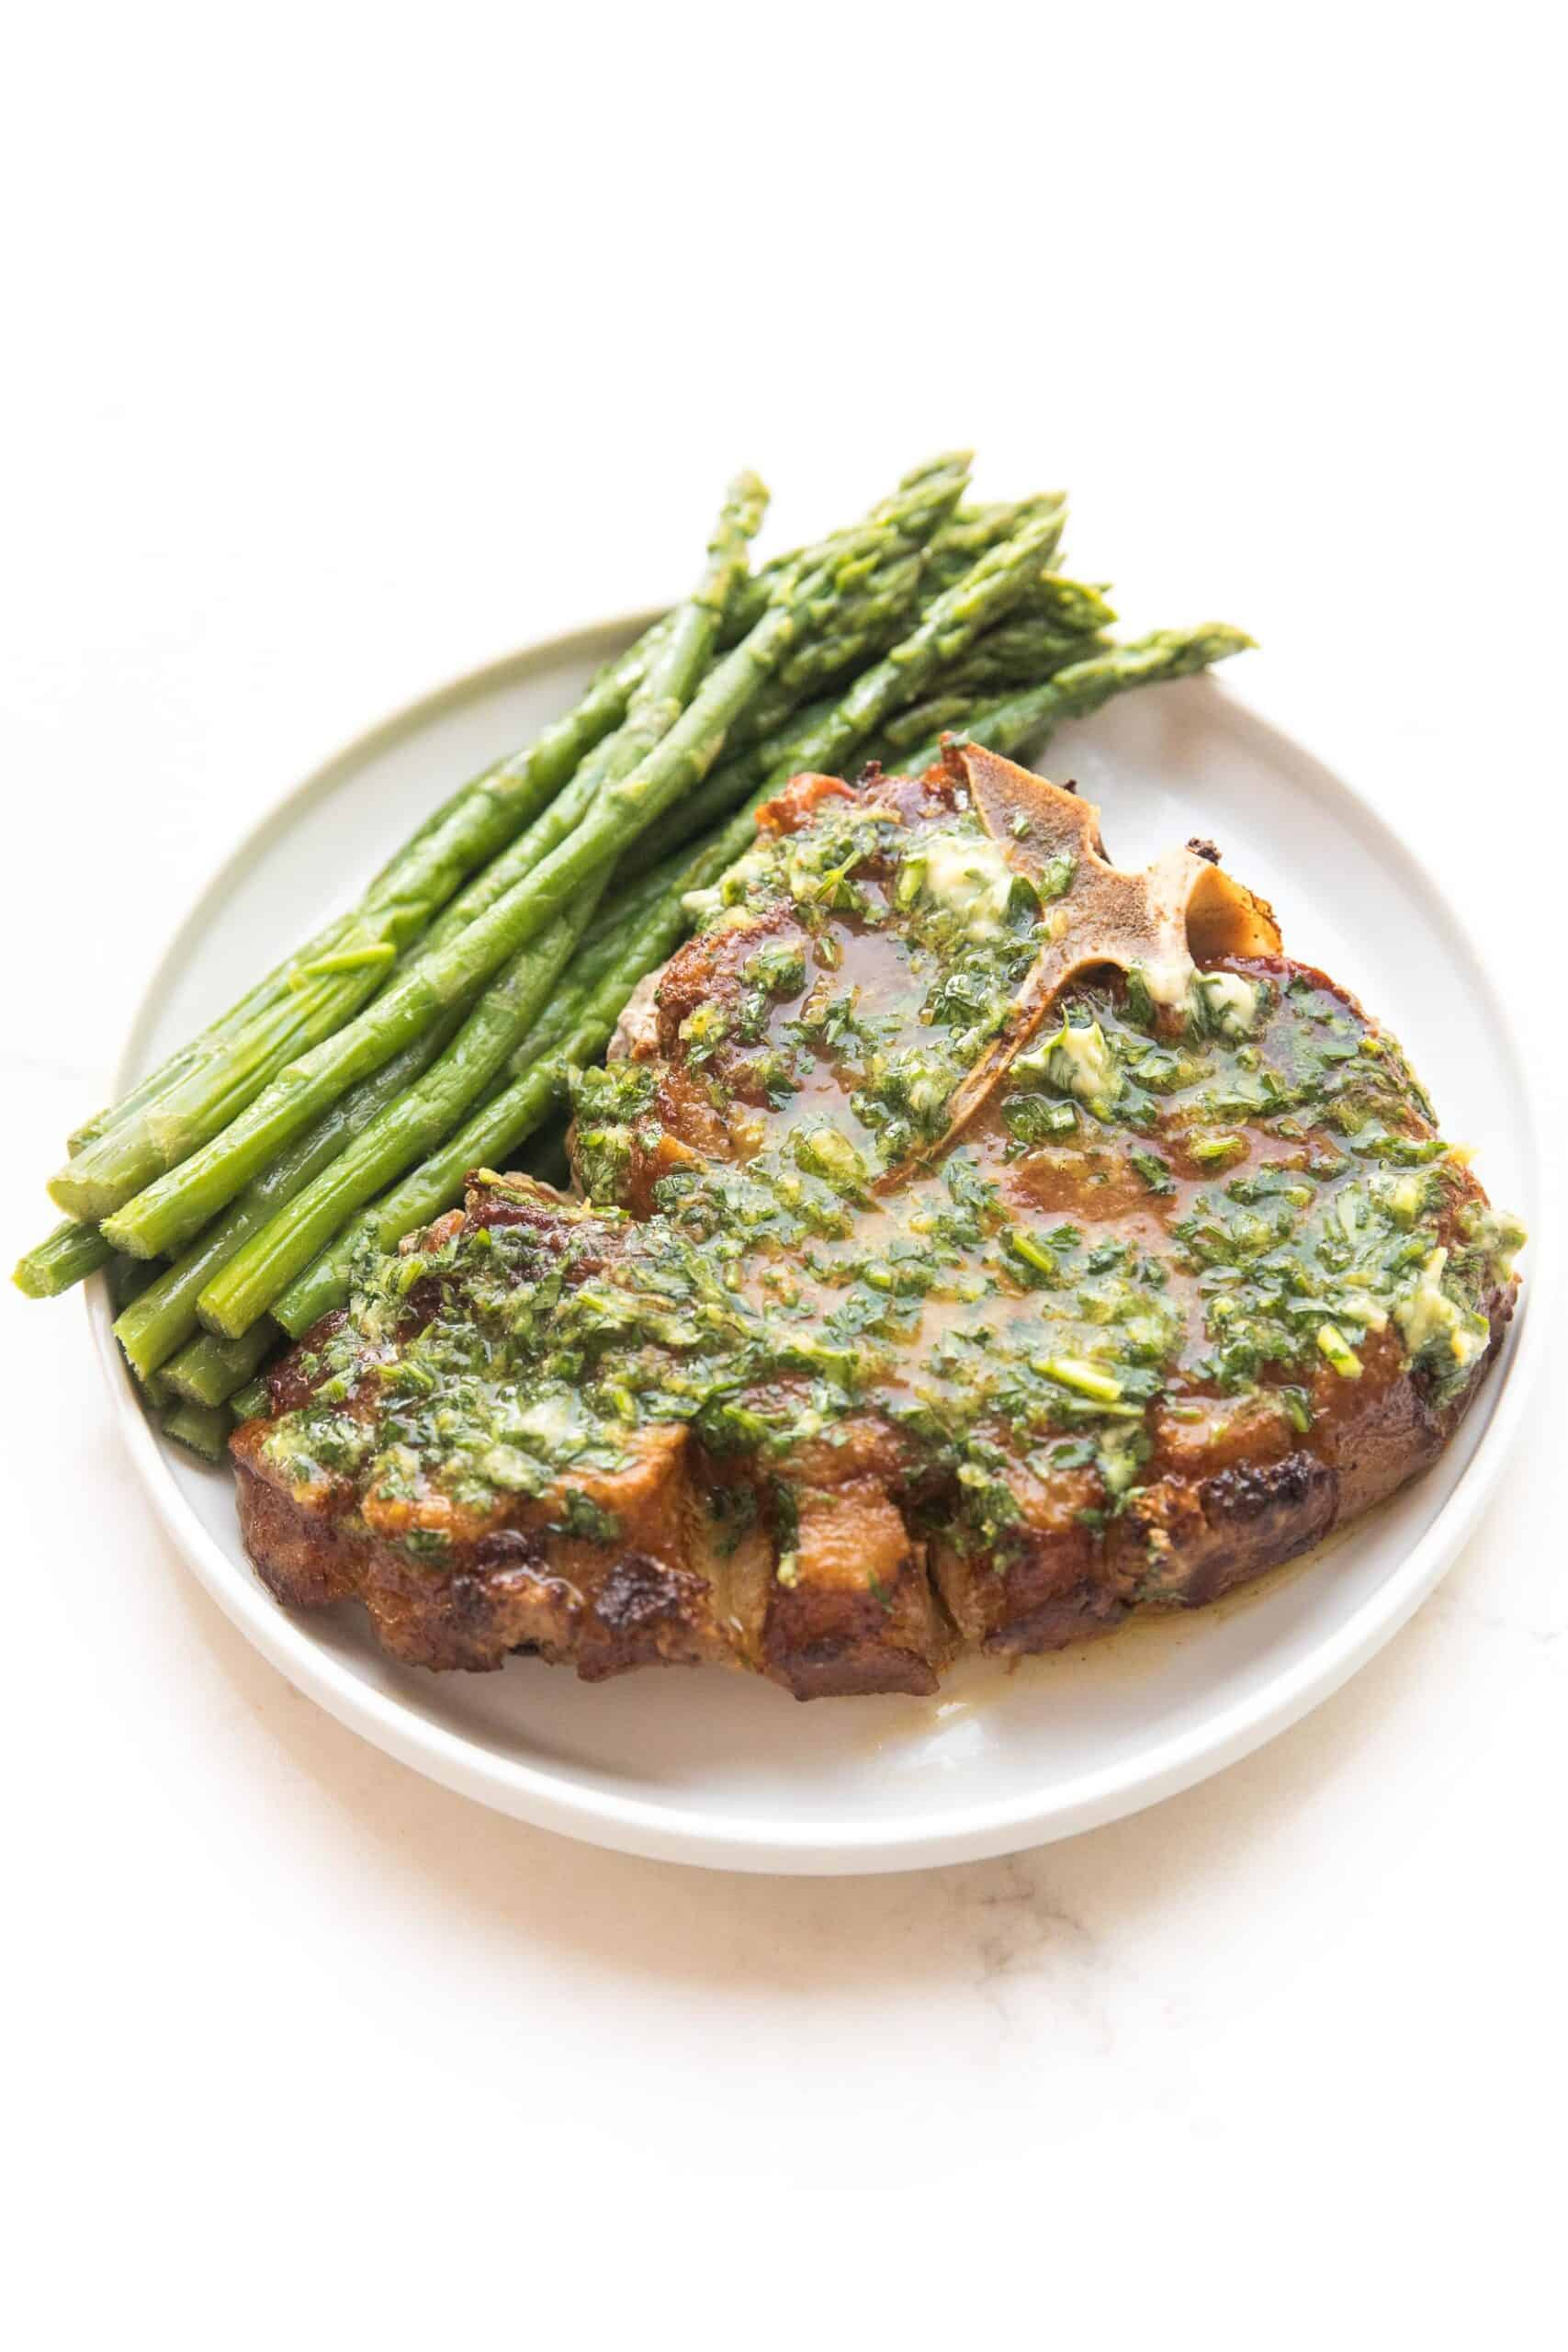 pork chop covered in melted herb butter with parsley and asparagus on a white plate and background